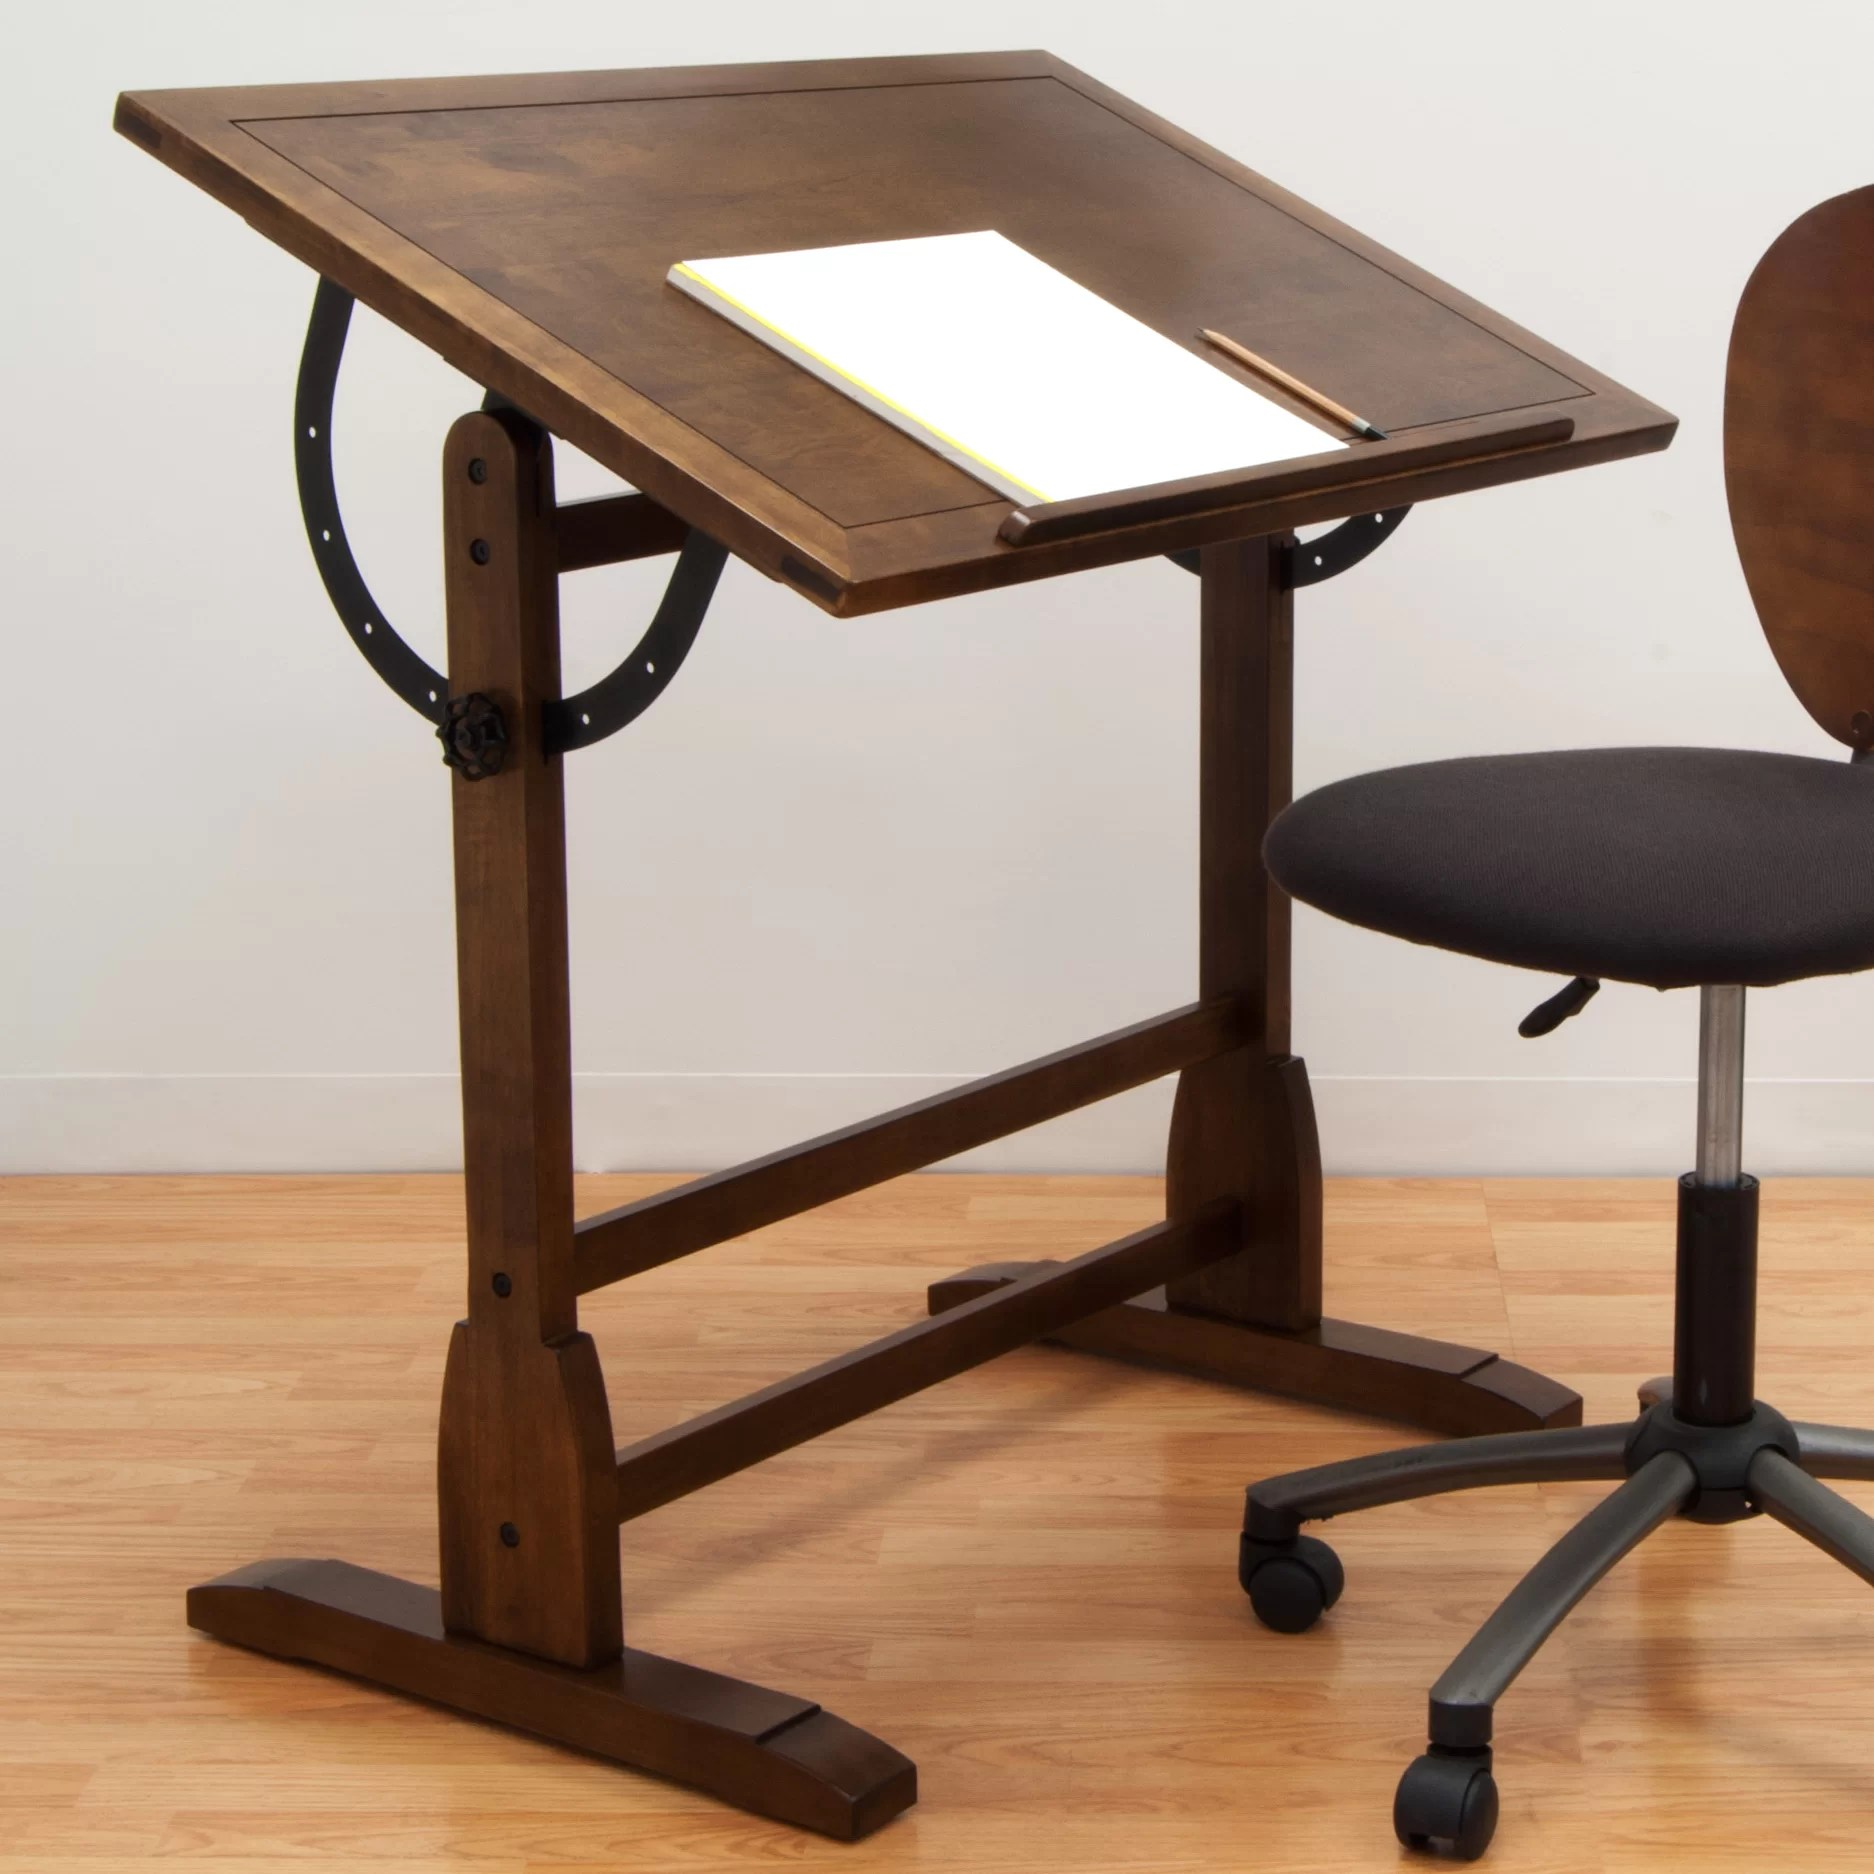 Adjustable Height Drafting Table Vintage Drafting Table